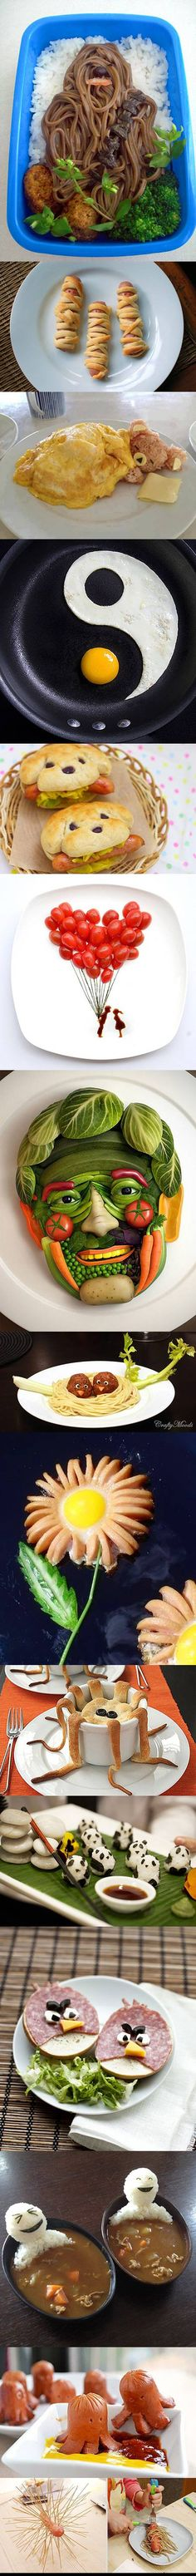 Here's a few cool examples that show how geeks play with their food.